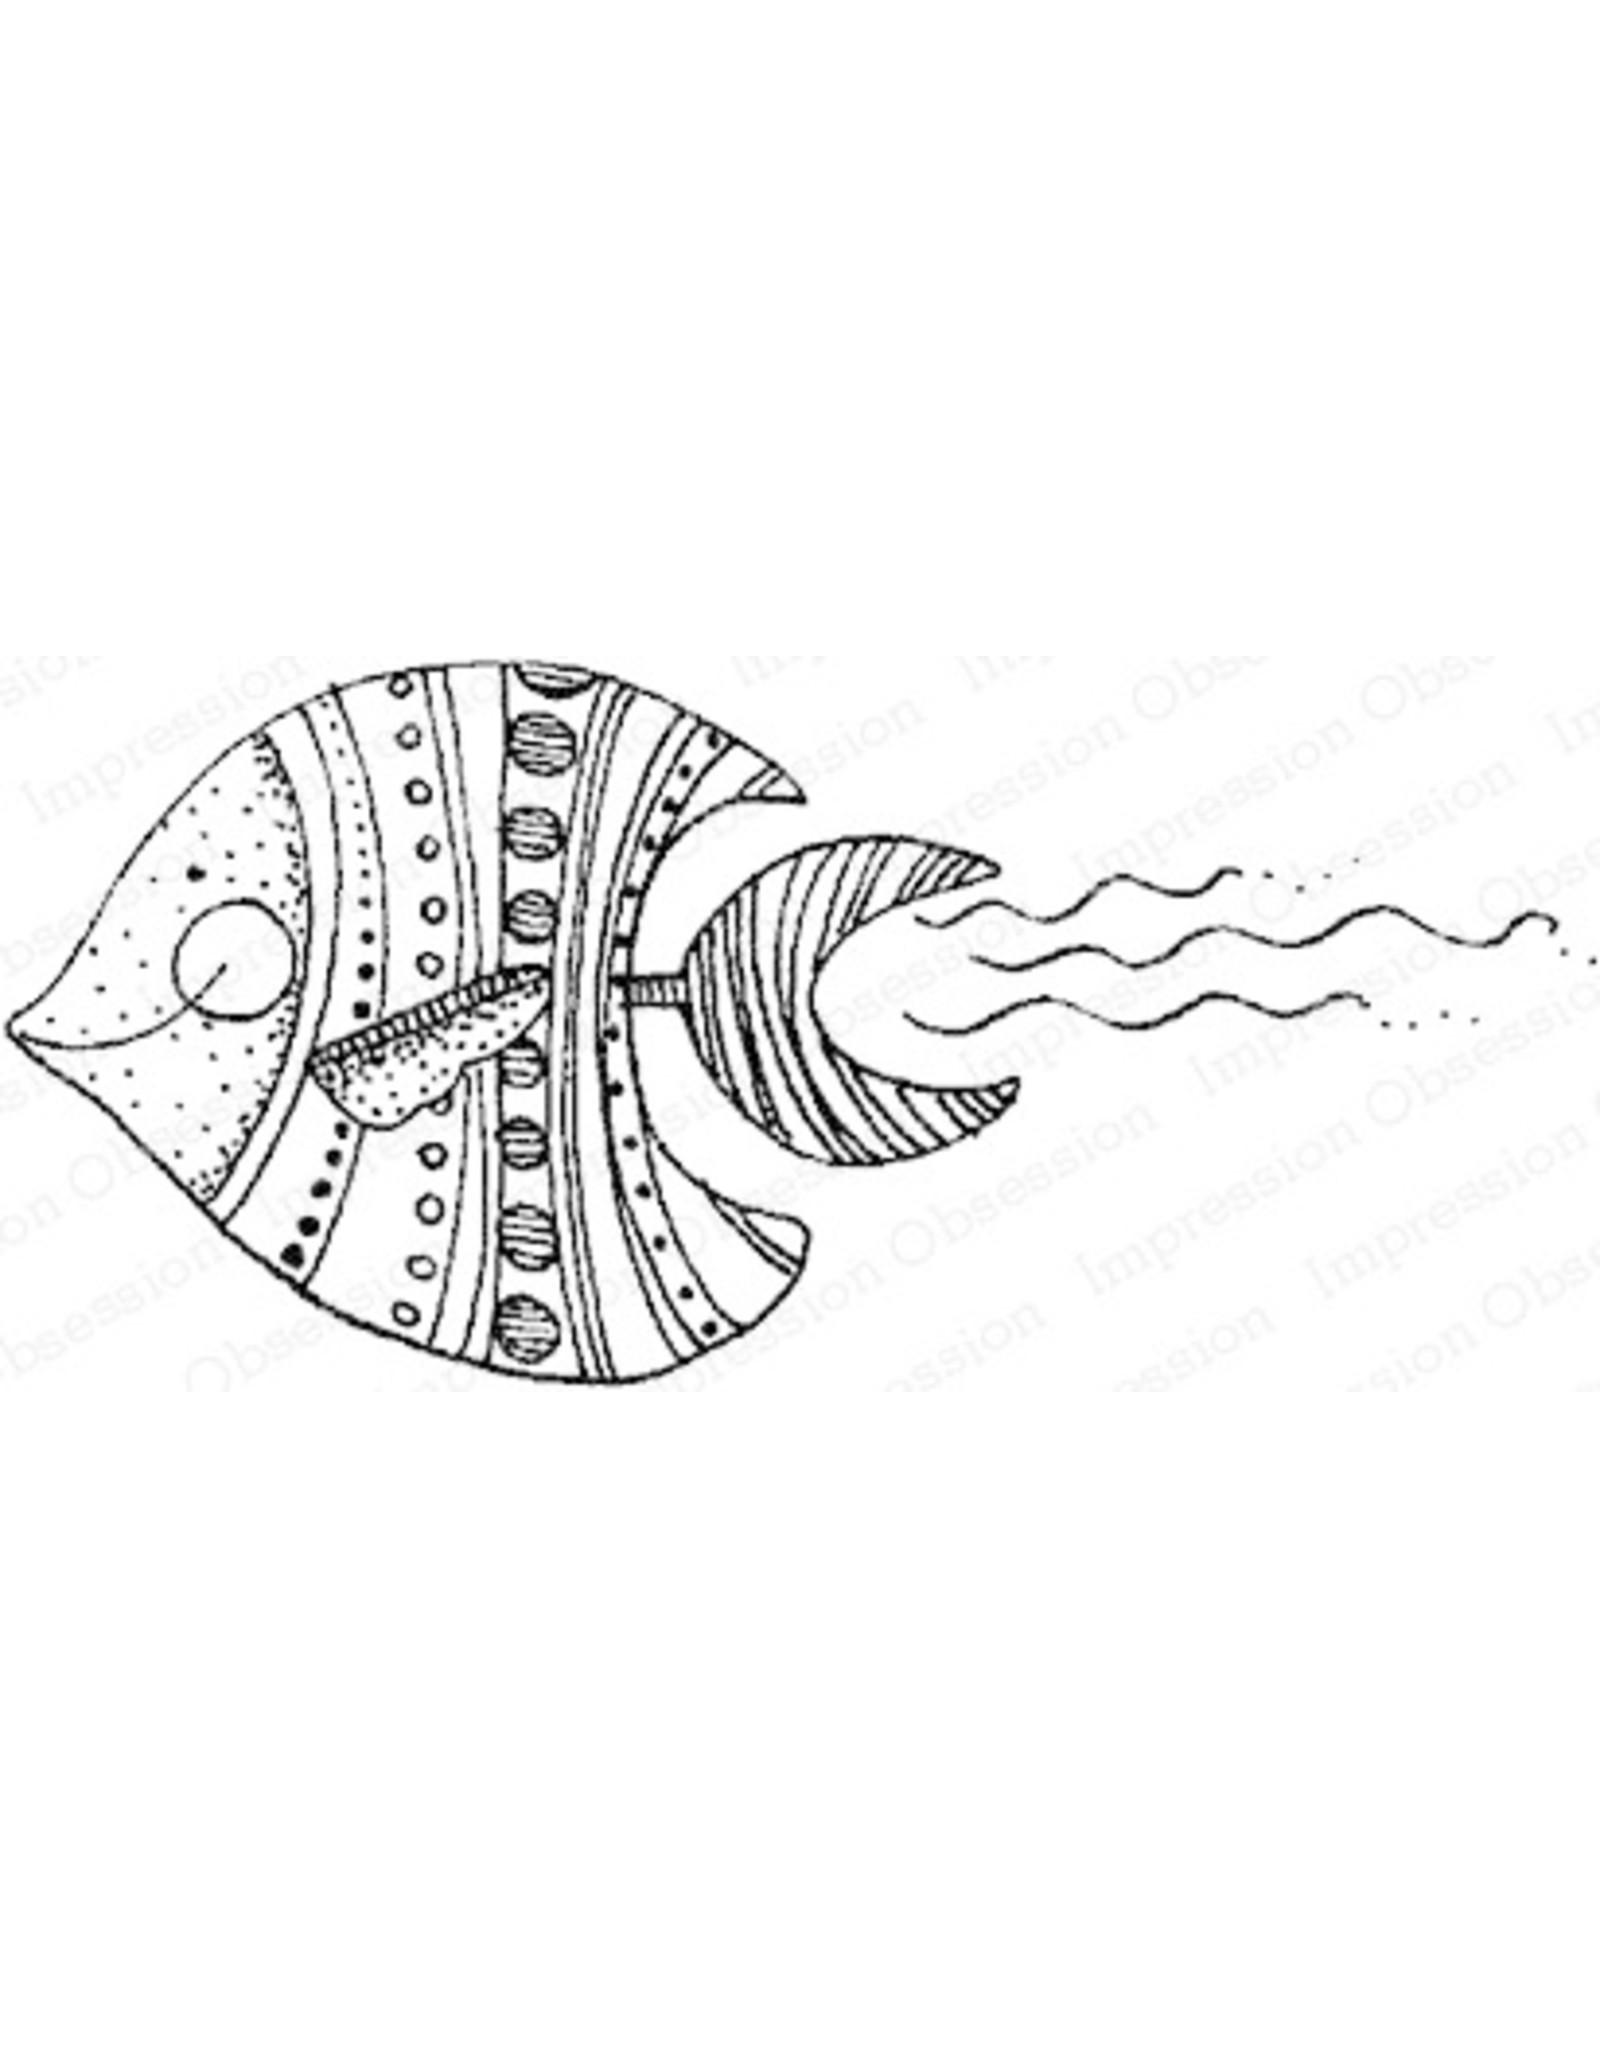 Impression Obsession Angel Fish Cling Stamp